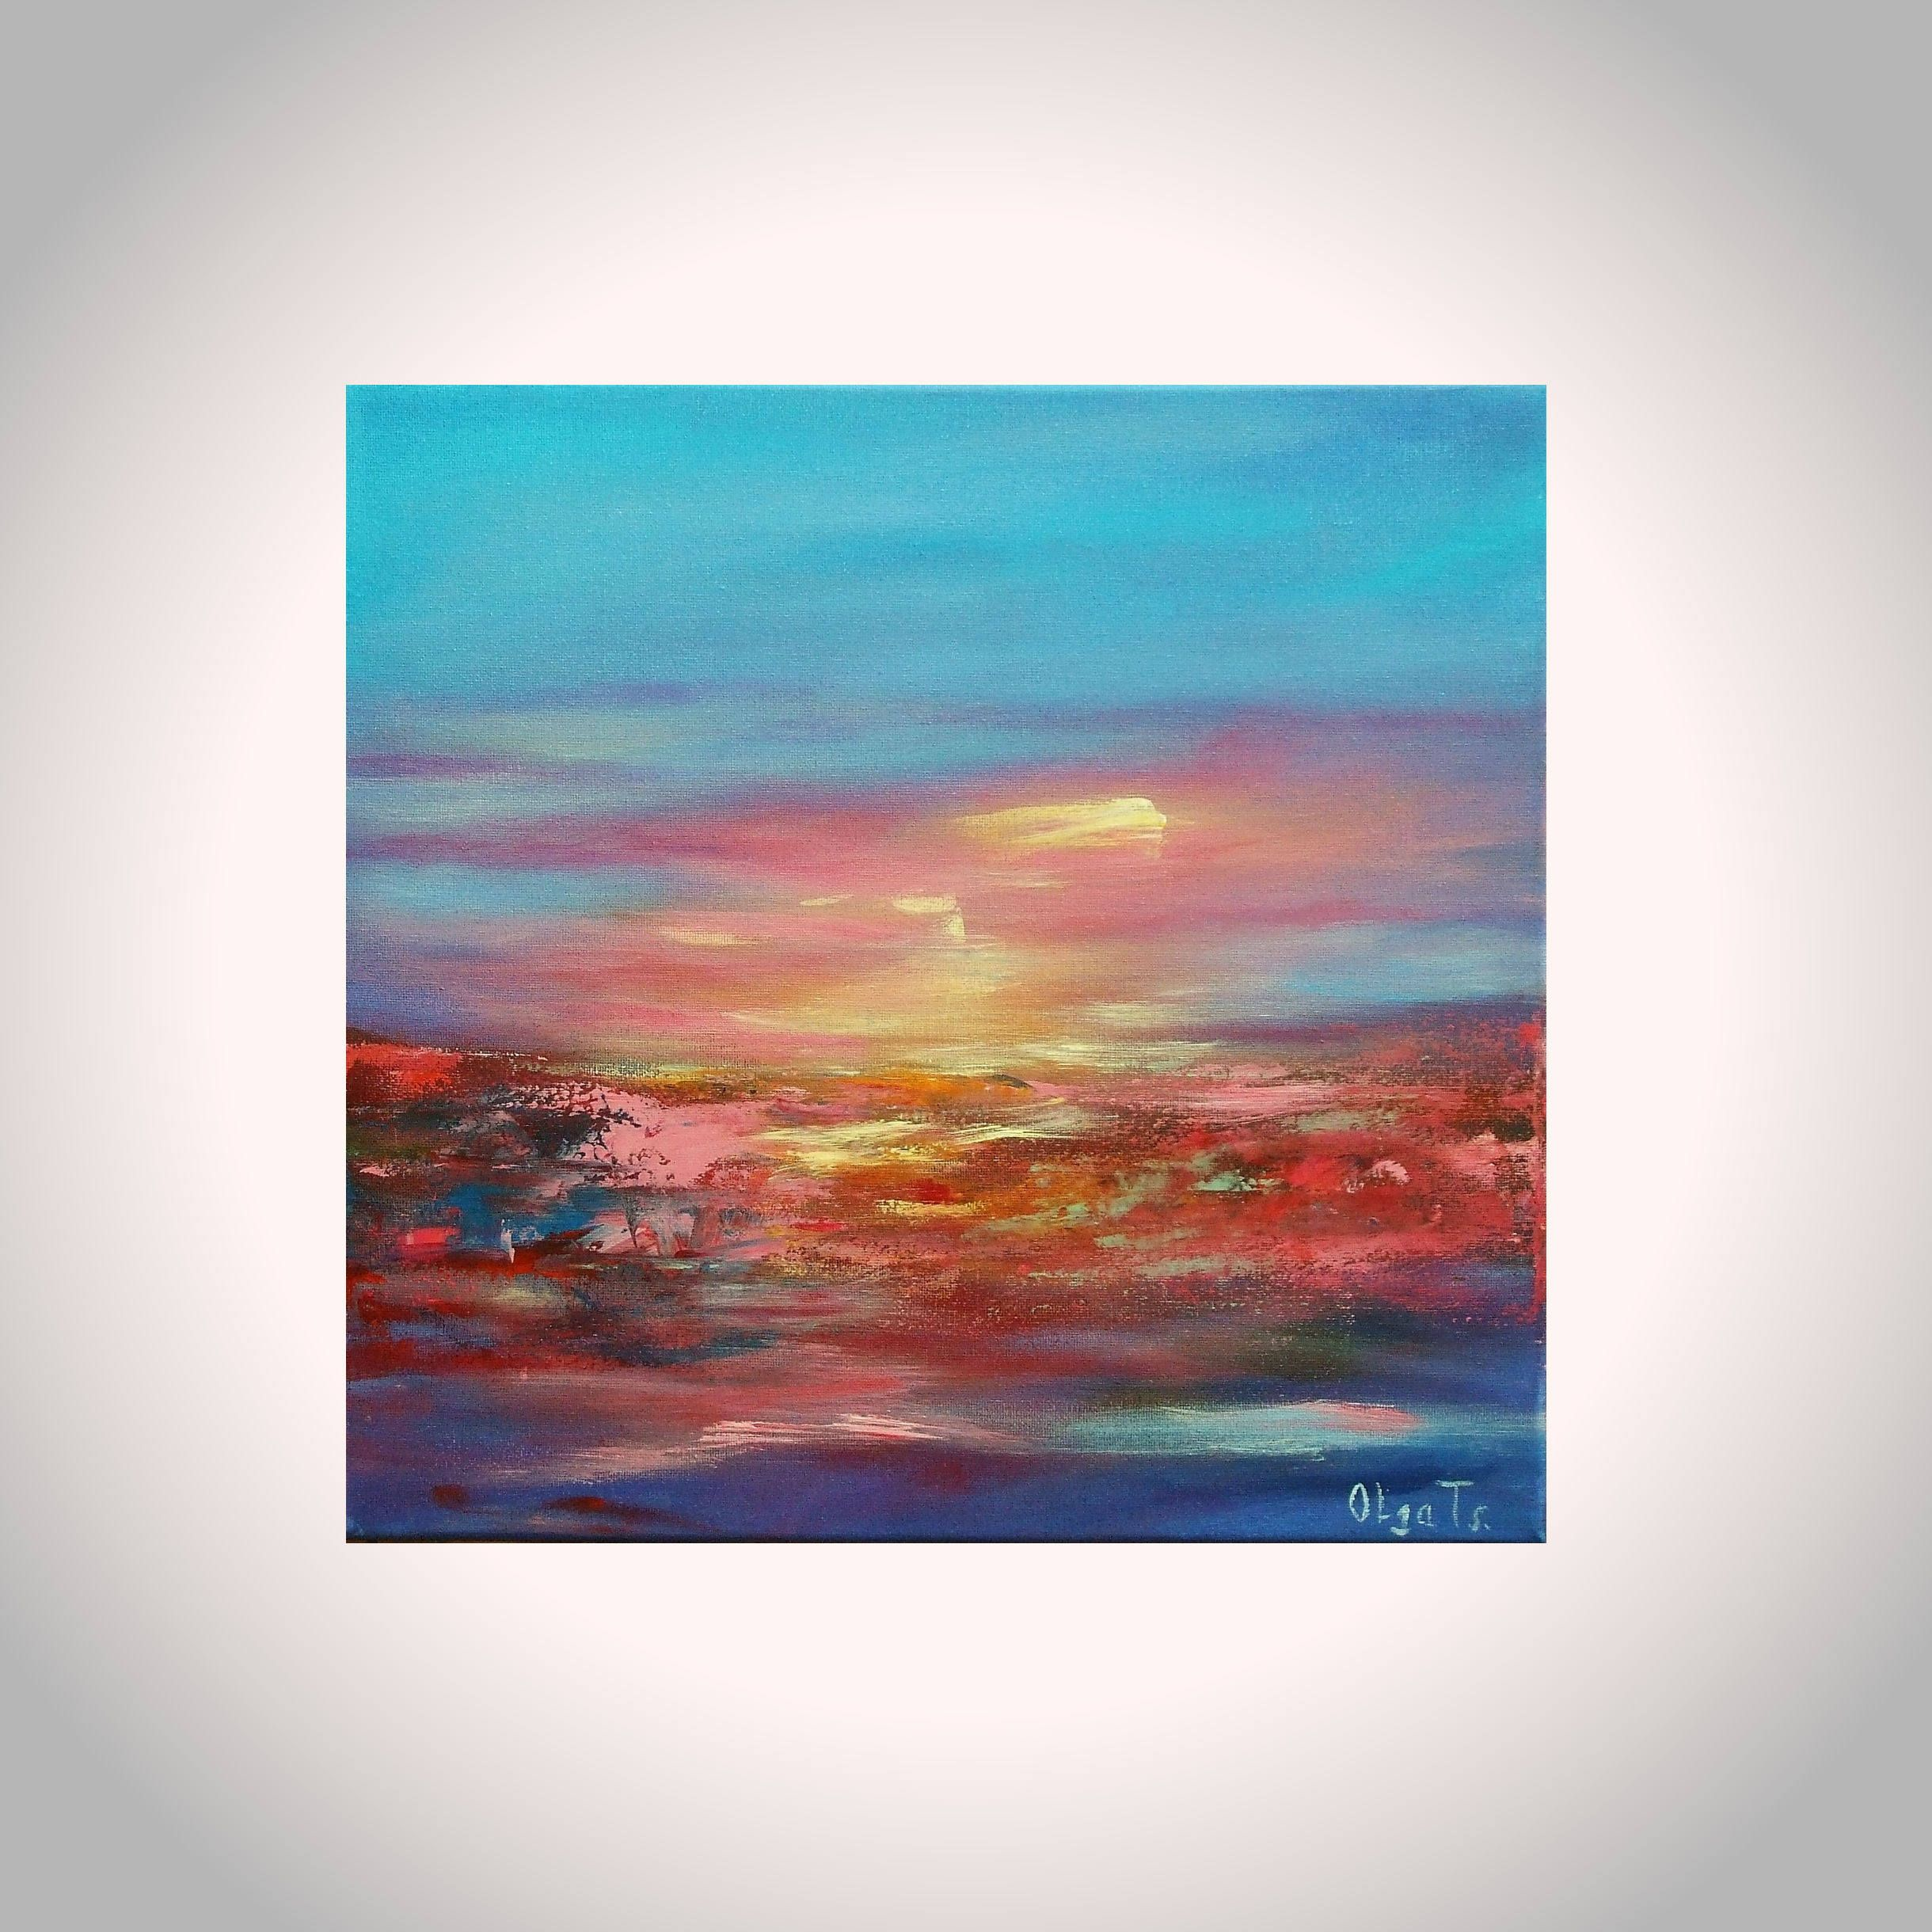 Fine Painting Office Decor New House Gift For Wife Blue Pink Abstract Artwork Sister Gifts Sky